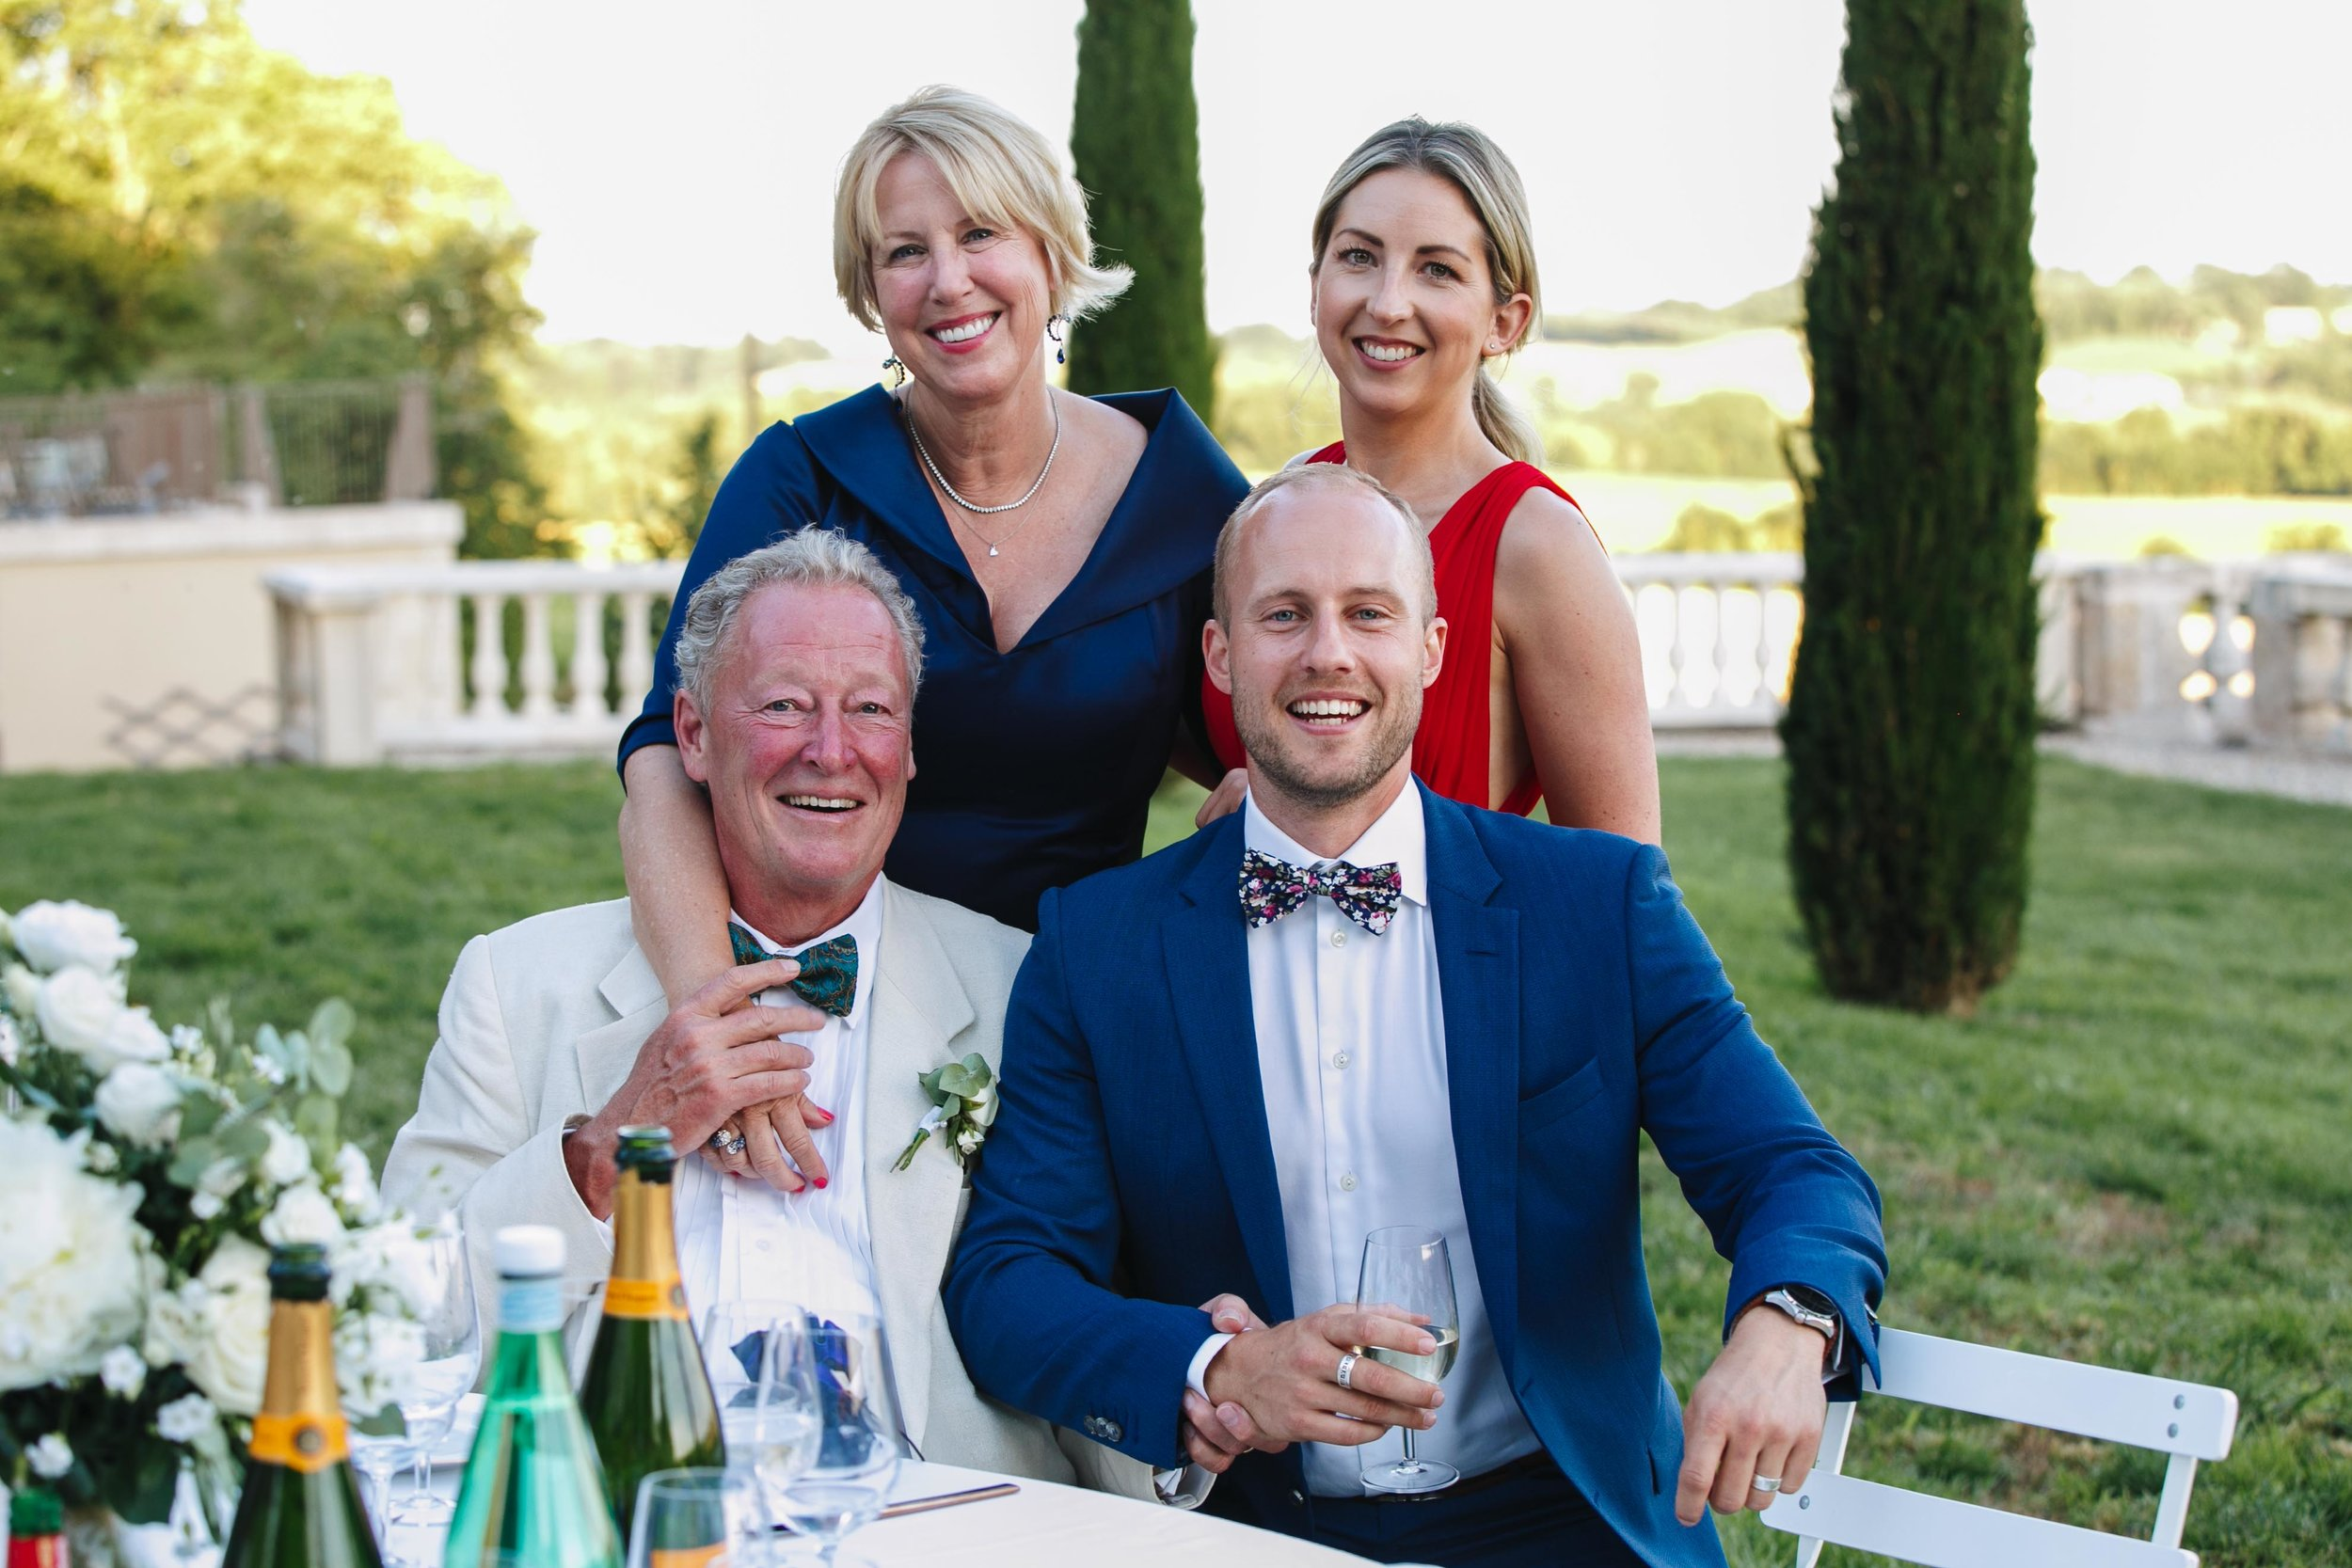 Steph Max South of France Wedding lr-888.jpg